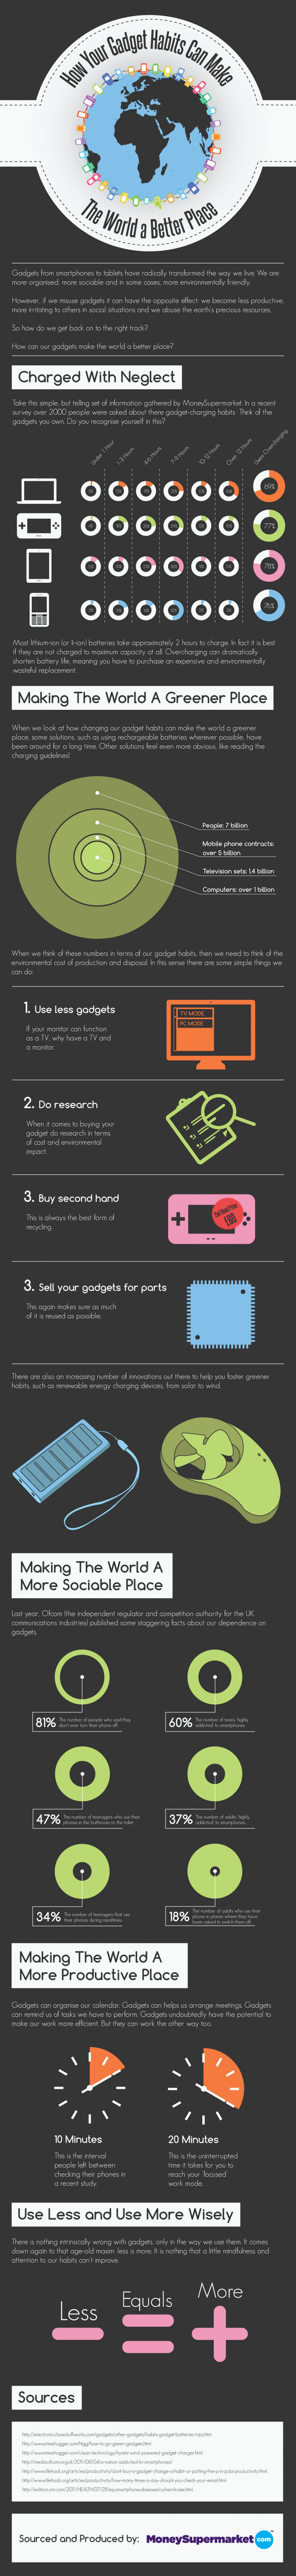 How your gadget habits can make the world a better place Infographic